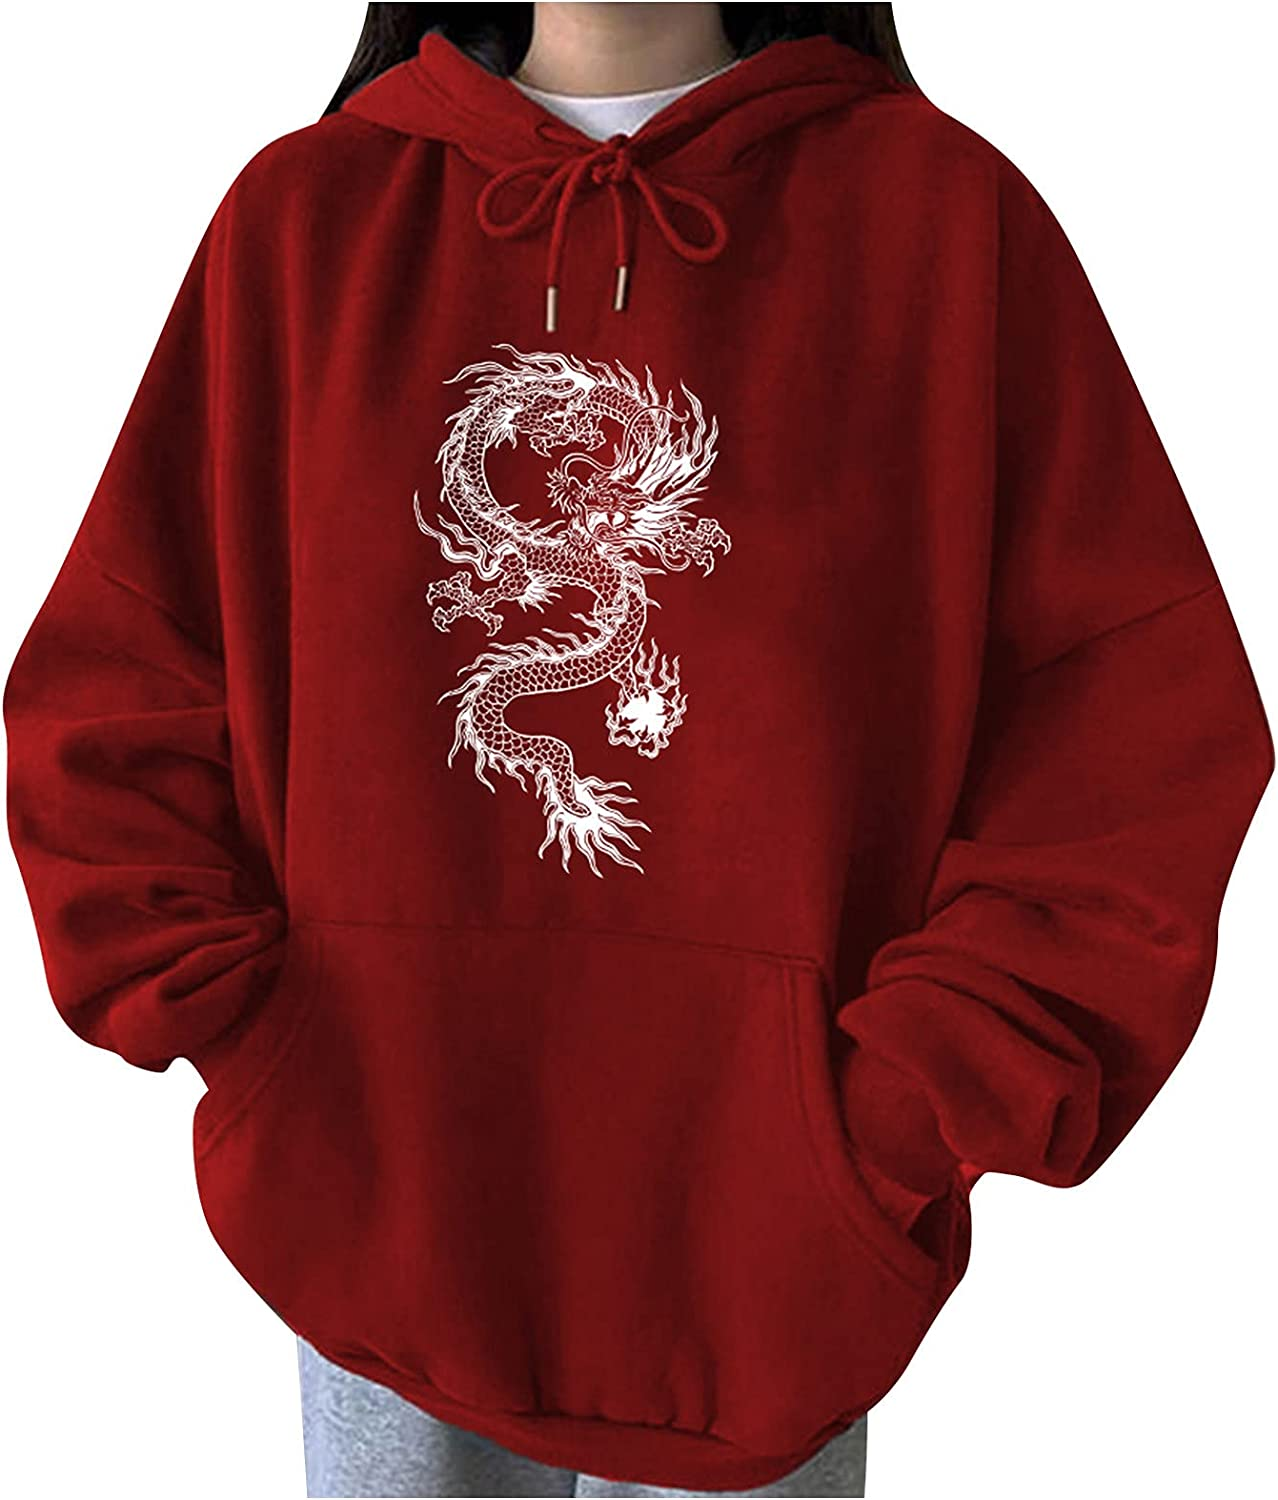 Bravetoshop Oversized Large-scale sale Hoodies for Women Drawst Inexpensive Y2k Print Graphic